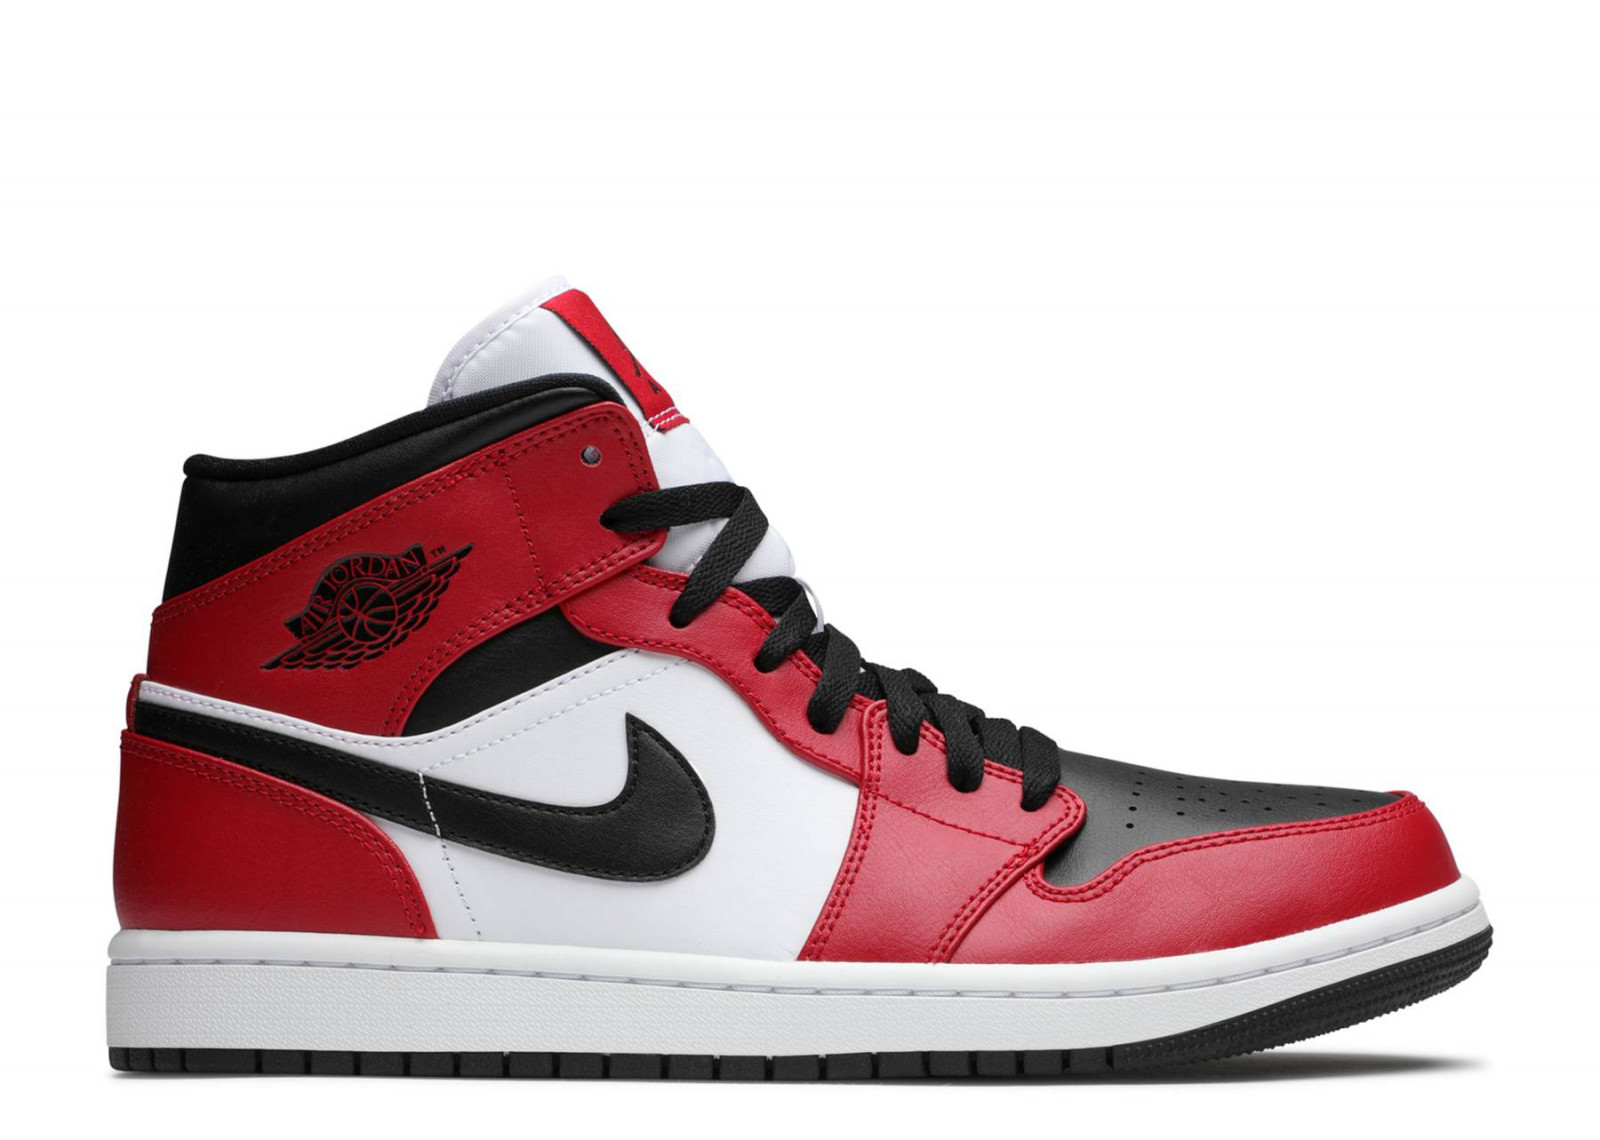 AIR JORDAN 1 MID Chicago Black Toe  image 1